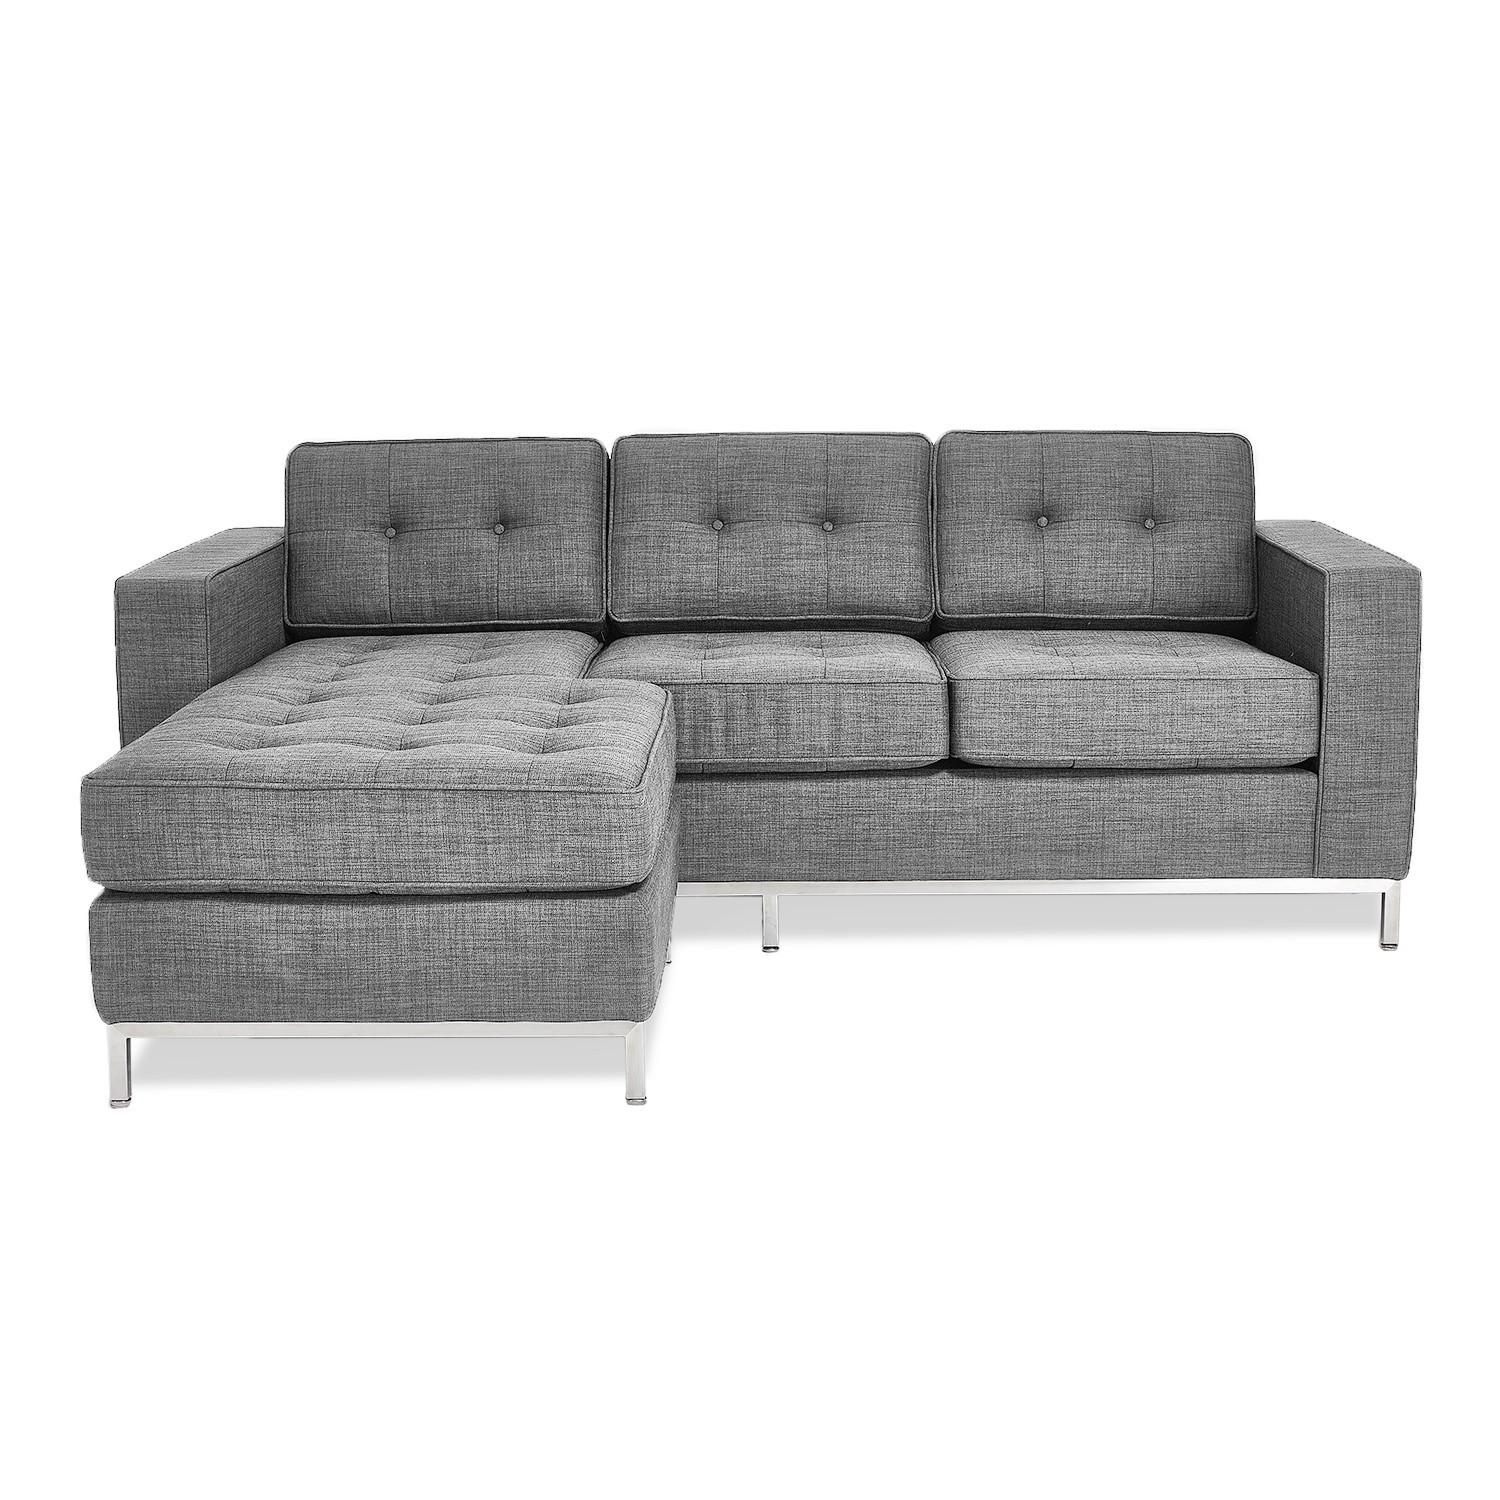 Gus* Modern Jane Loft Bi Sectional – Abc Carpet & Home Pertaining To Jane Bi Sectional Sofa (View 7 of 20)